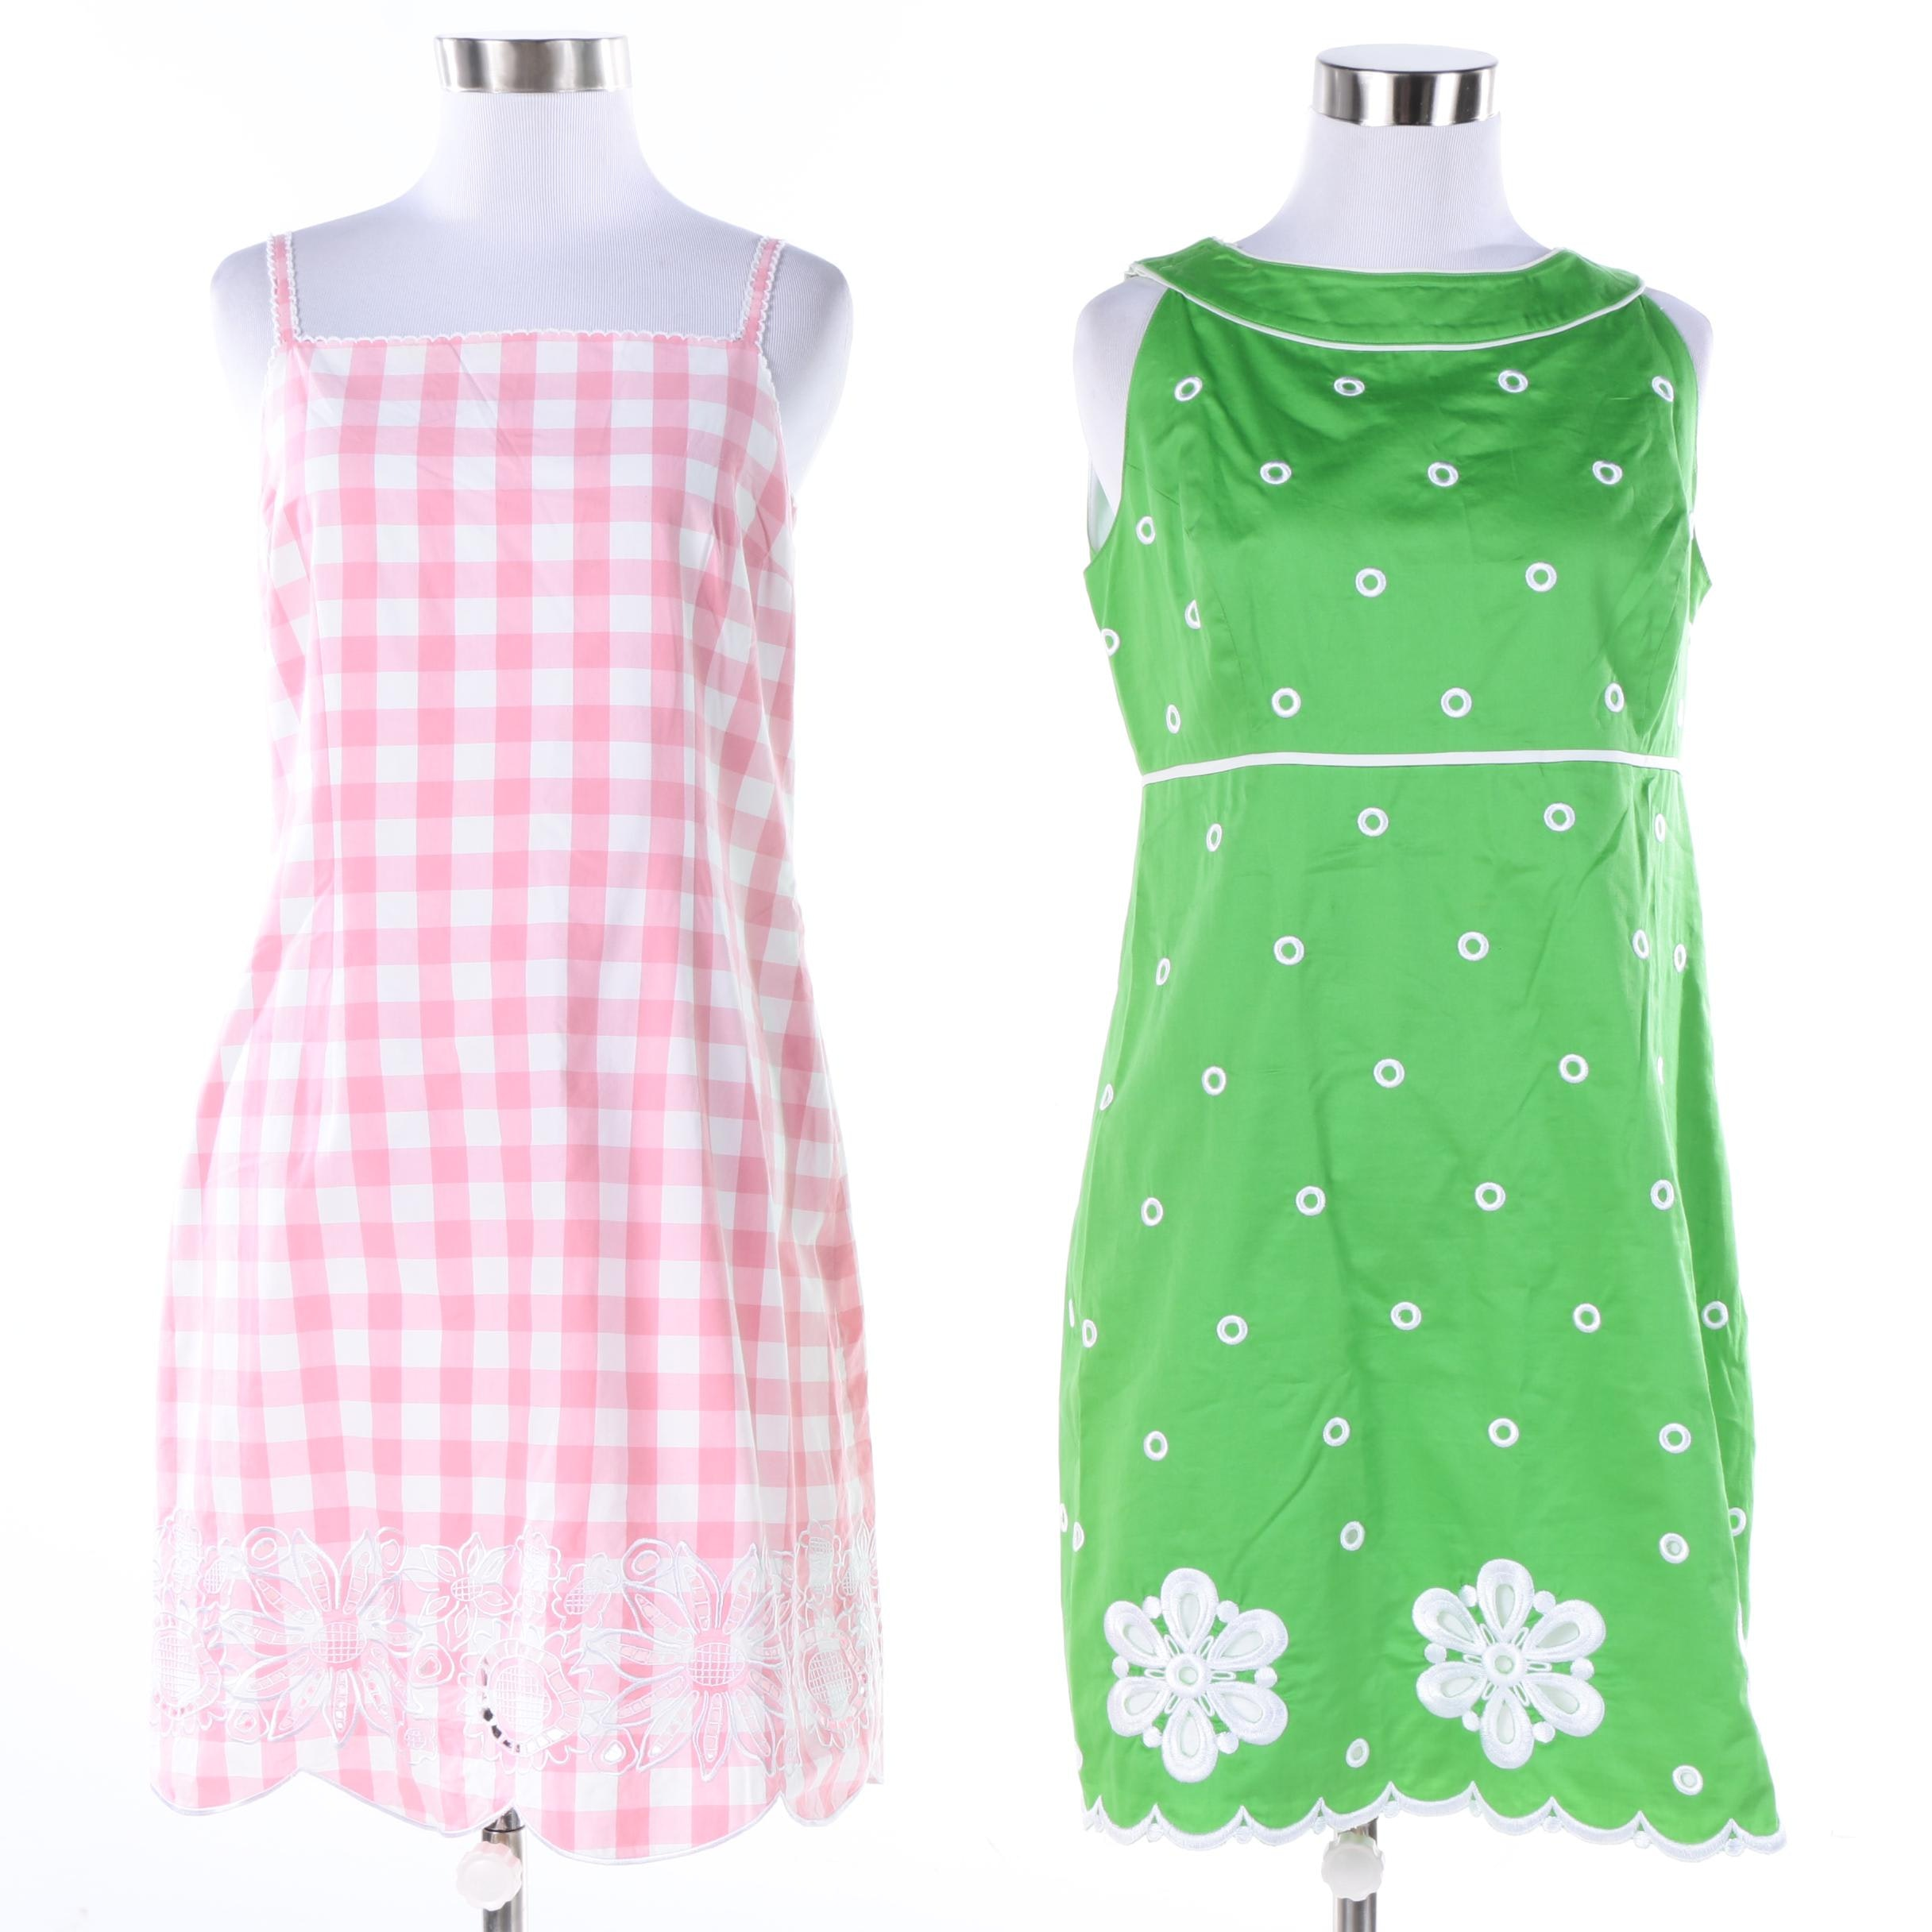 Women's Lilly Pulitzer Cotton Summer Dresses